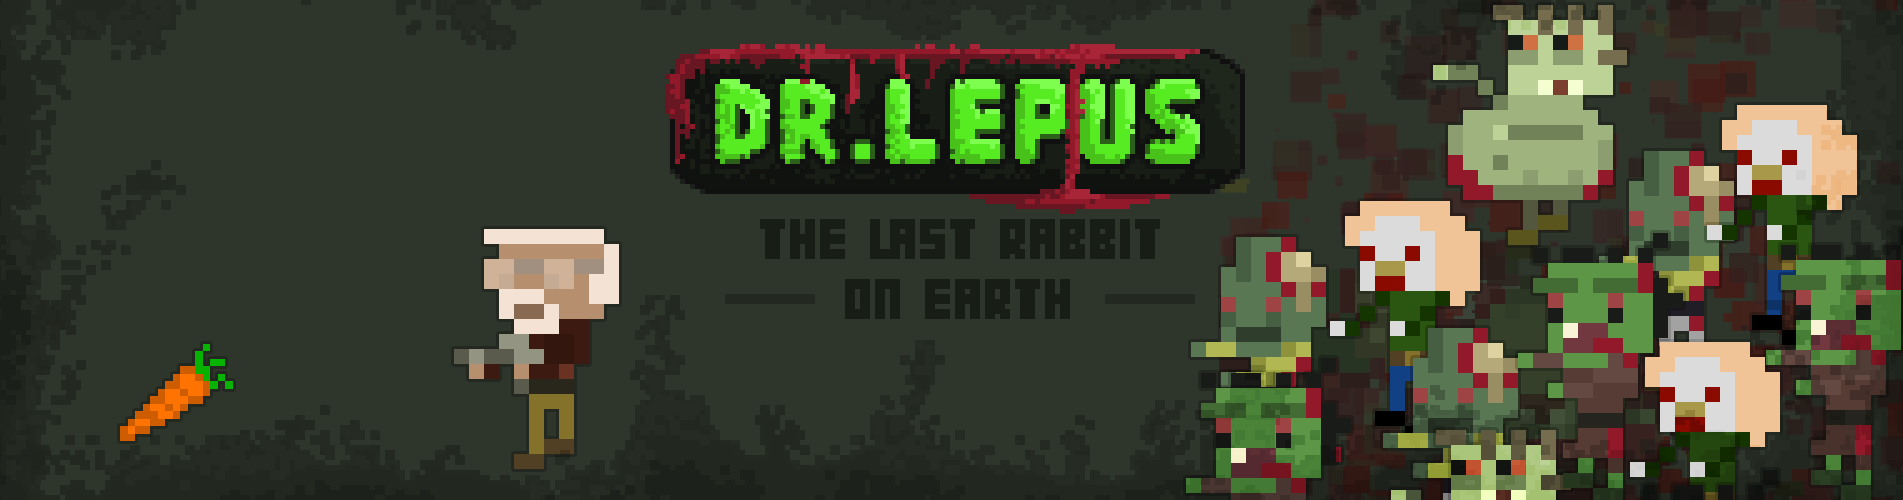 DR.LEPUS - The Last Rabbit on Earth